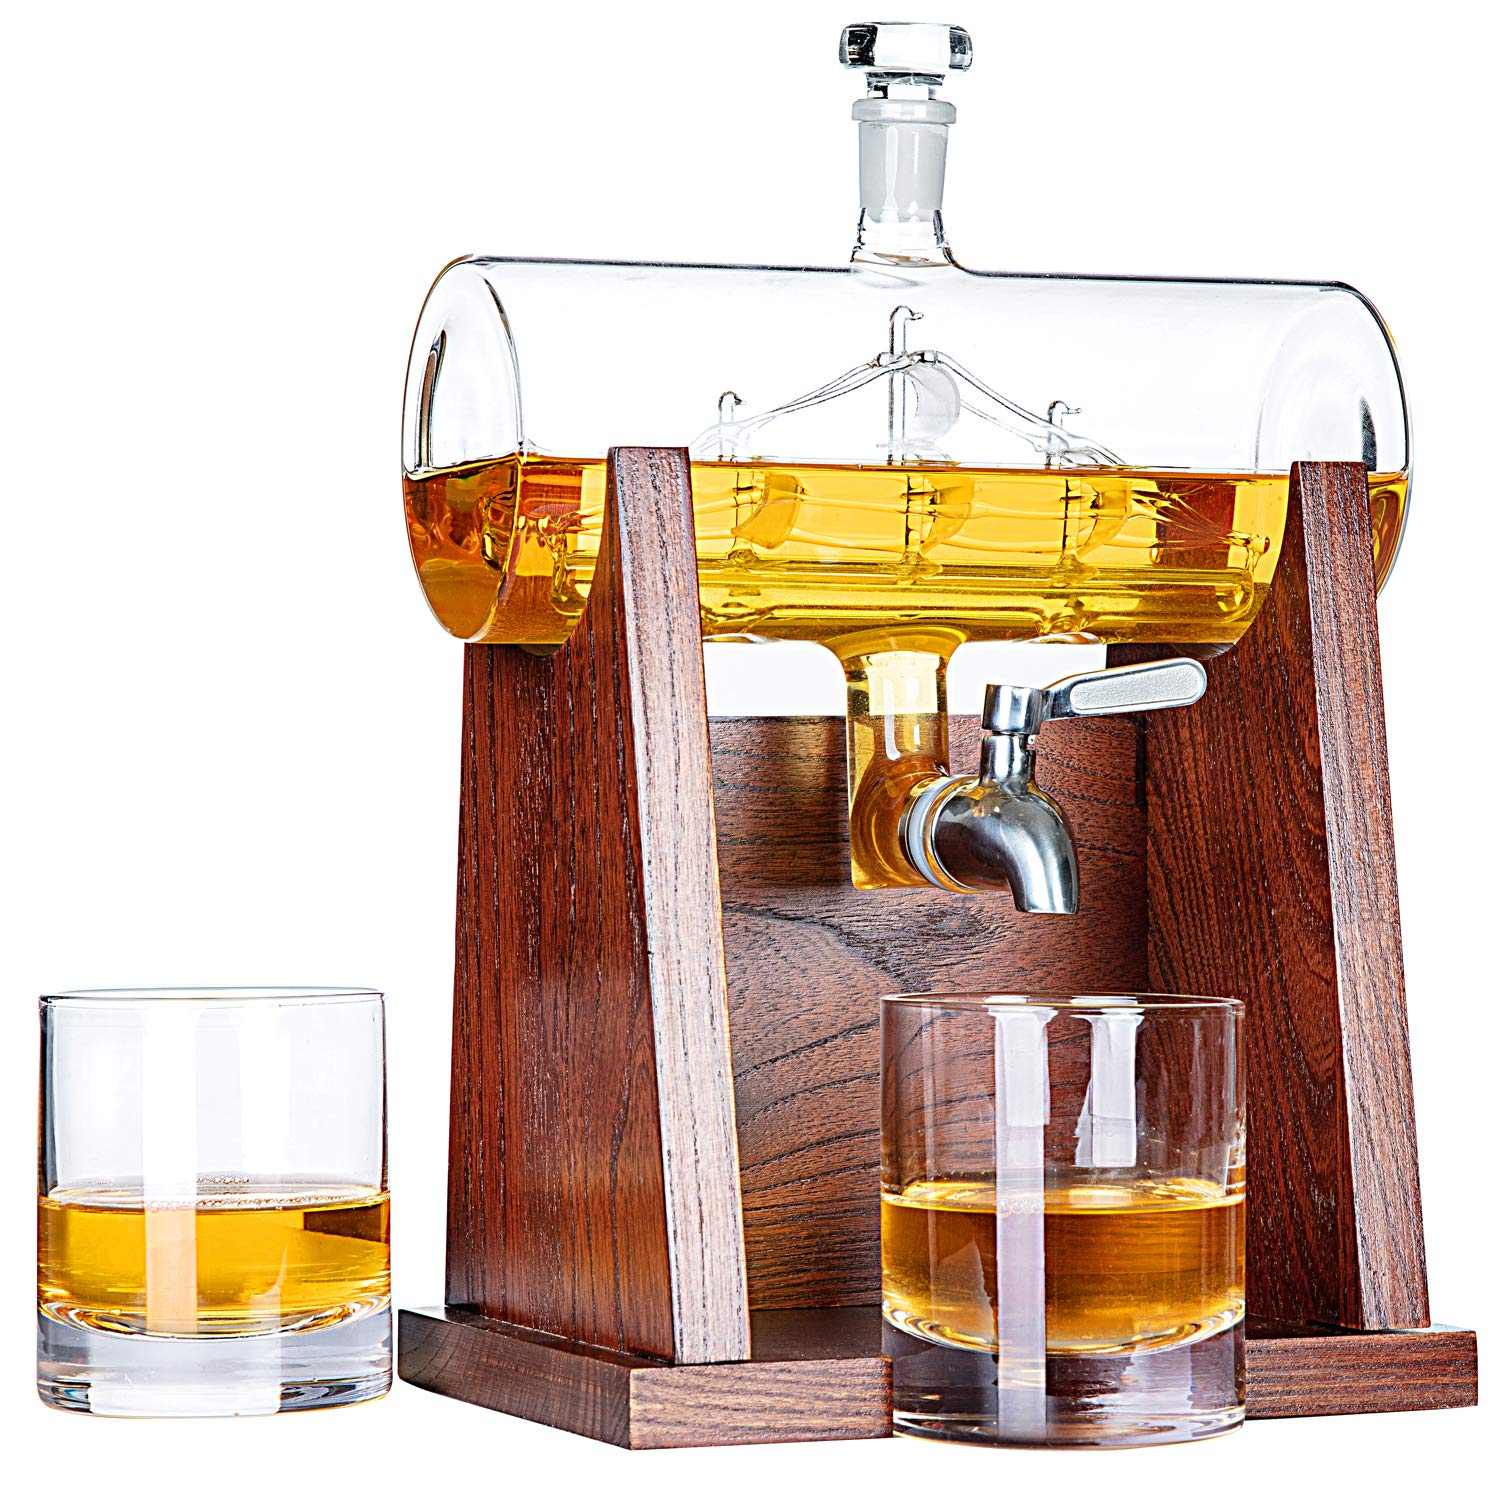 Jillmo Whiskey Decanter Set with 2 Glasses - 1250ml & 42 oz Lead Free Barrel Ship Dispenser with Detachable Wooden Holder Gift for Liquor, Scotch, Bourbon, Vodka, Whisky, Rum & Alcohol by Jillmo (Image #2)